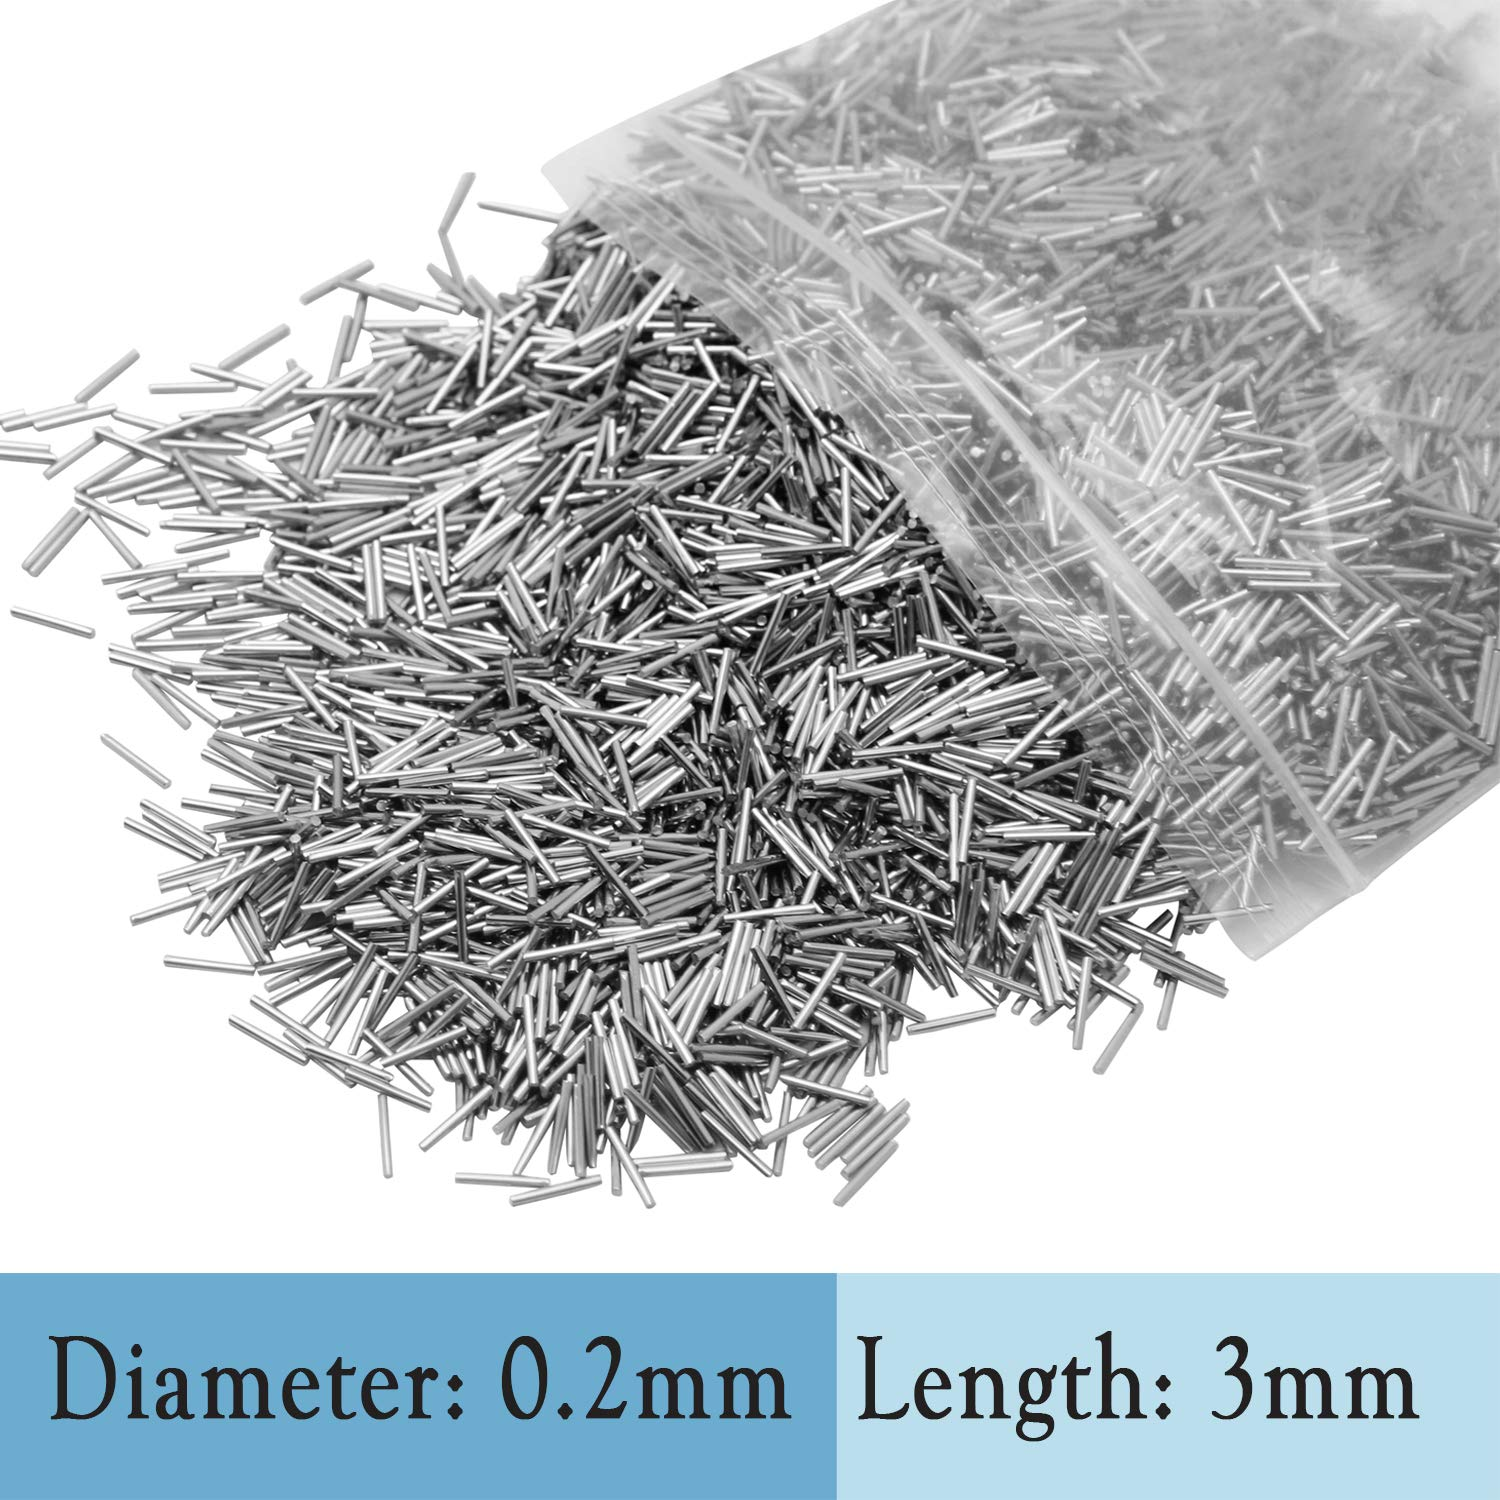 STAINLESS STEEL FINISHING PINS for Magnetic Tumbler Polisher Polishing Pins 0.20 x3mm B00YWJLHY8